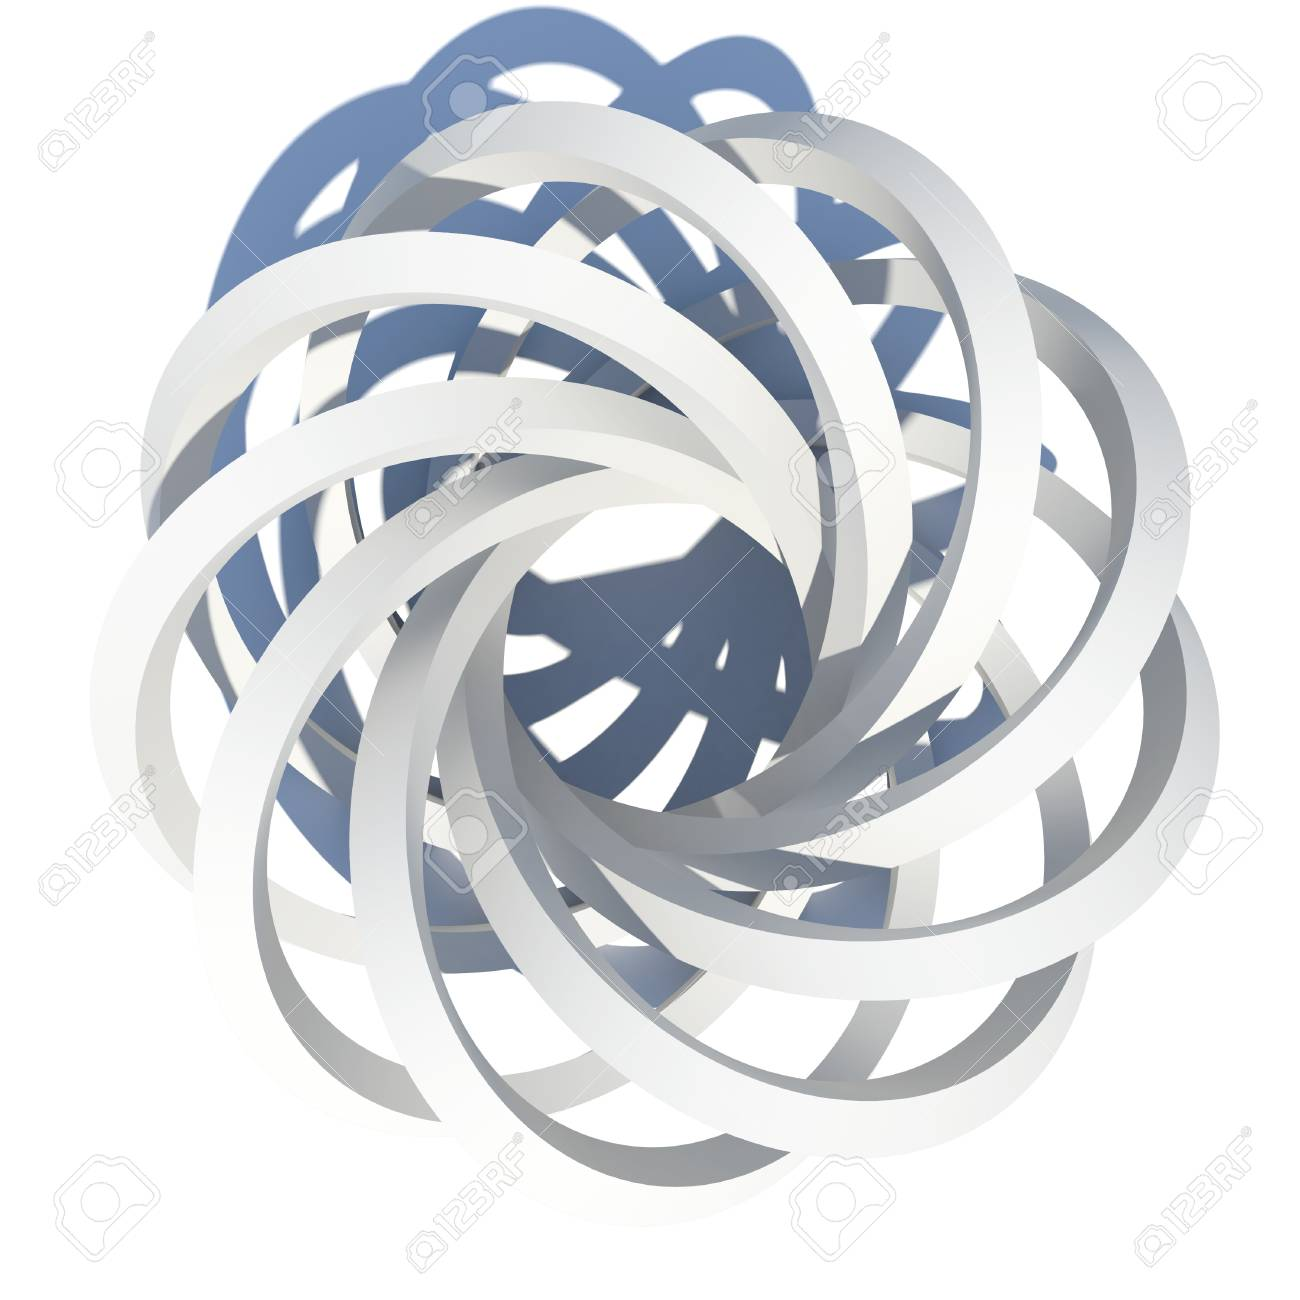 Abstract architecture  Isolated render on the white background Stock Photo - 21442005